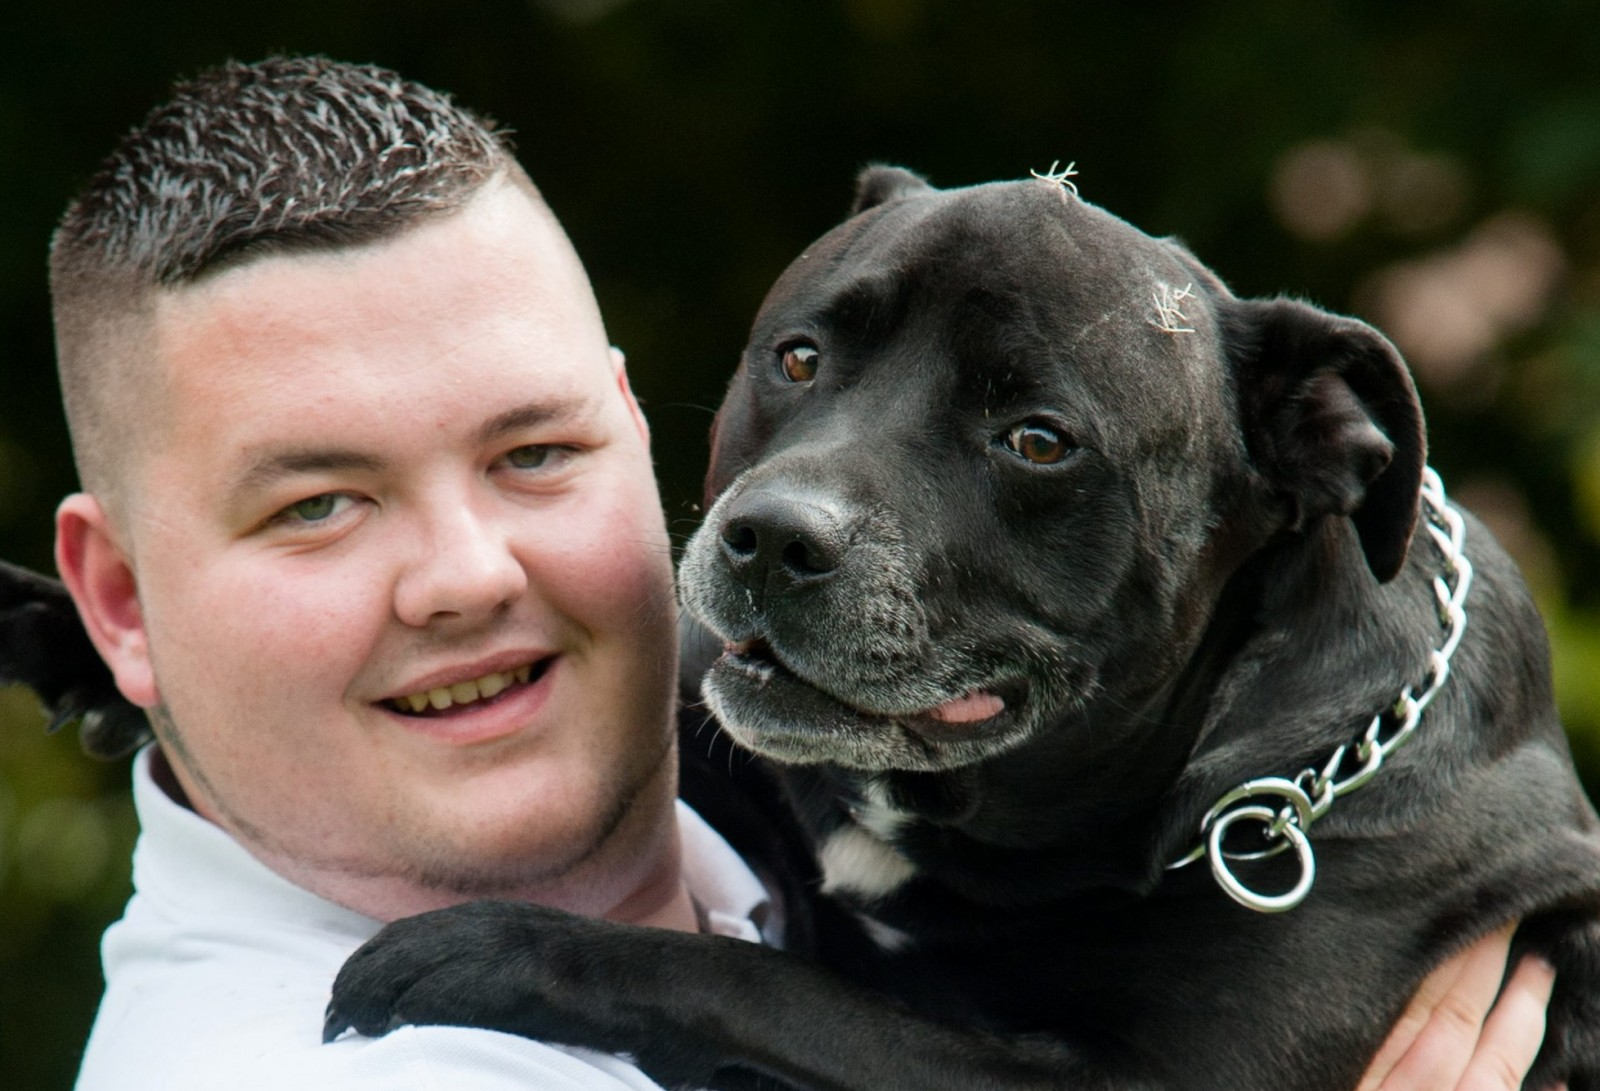 Owner devastated to have just days left with the dog that saved his life